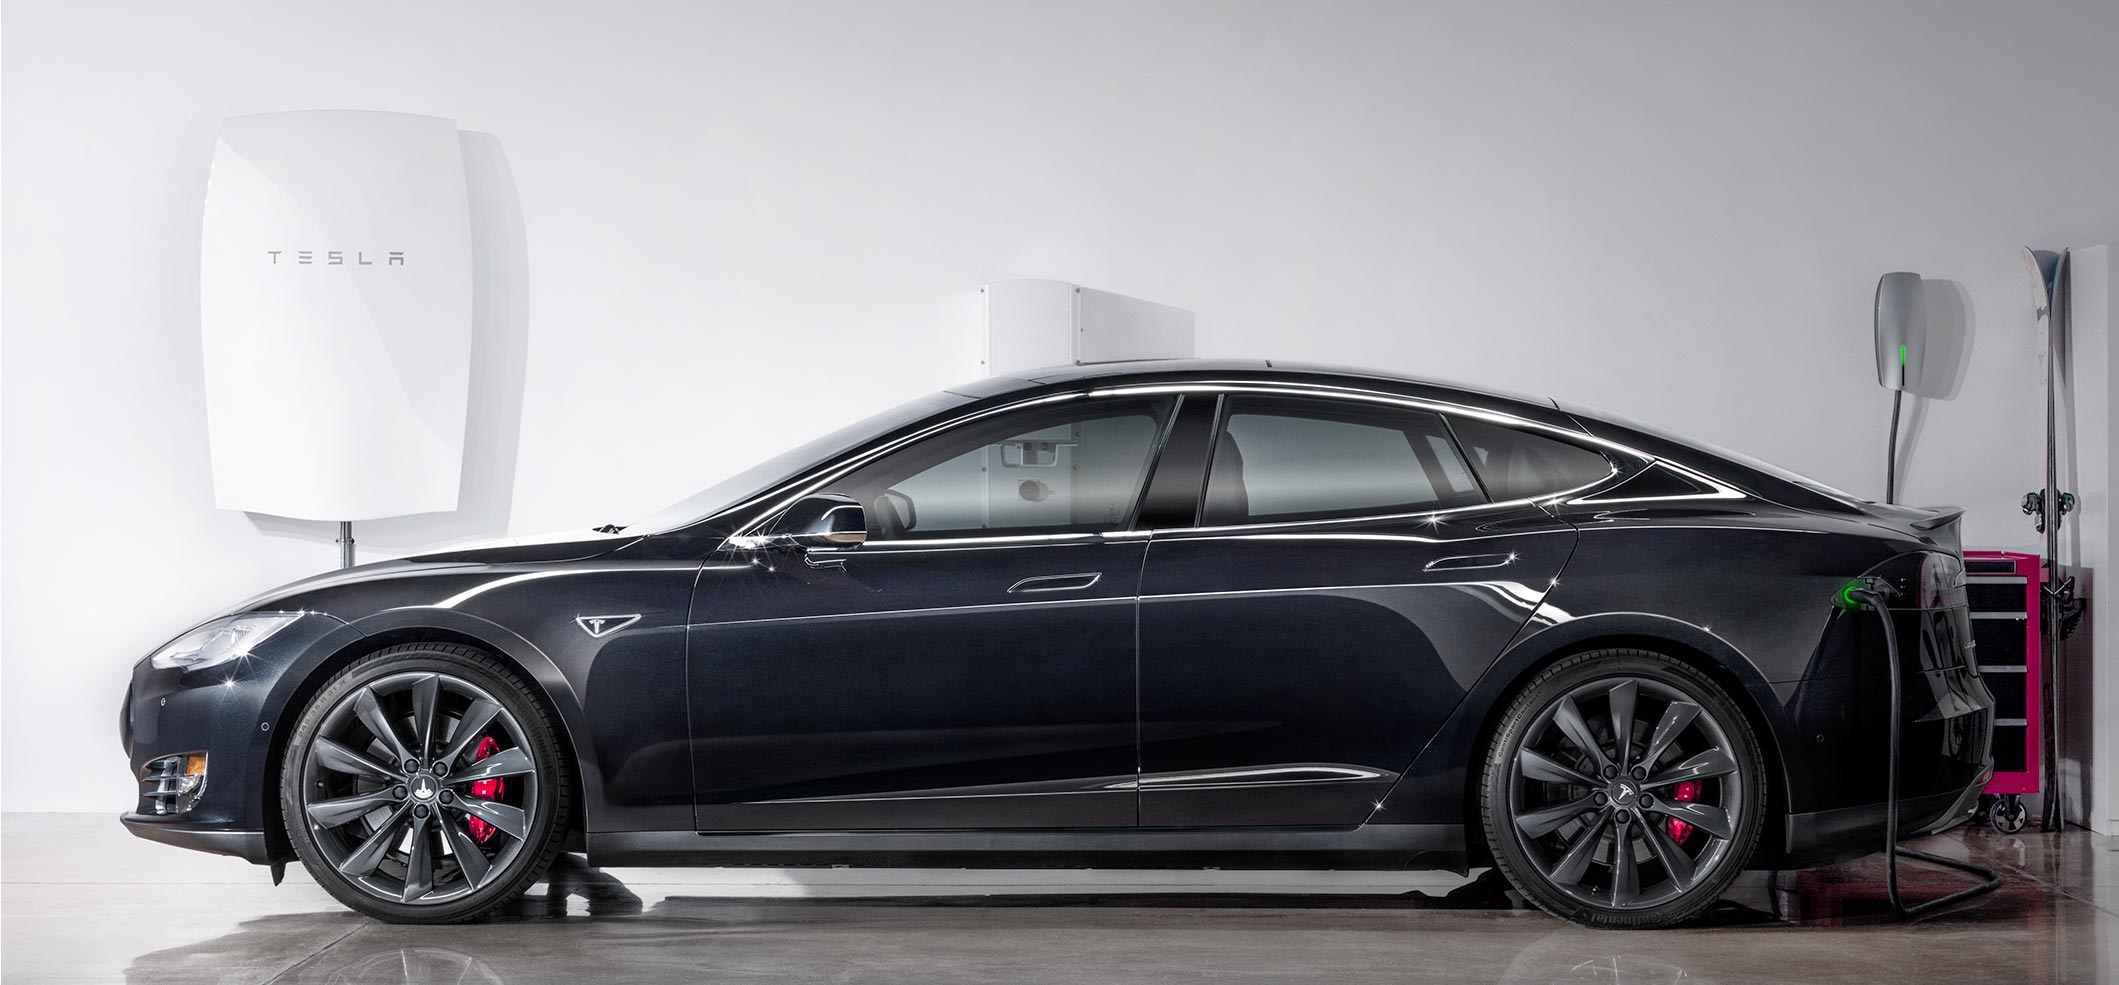 Top 10 Electric Cars with the Most Range Tesla Leaves other EV s